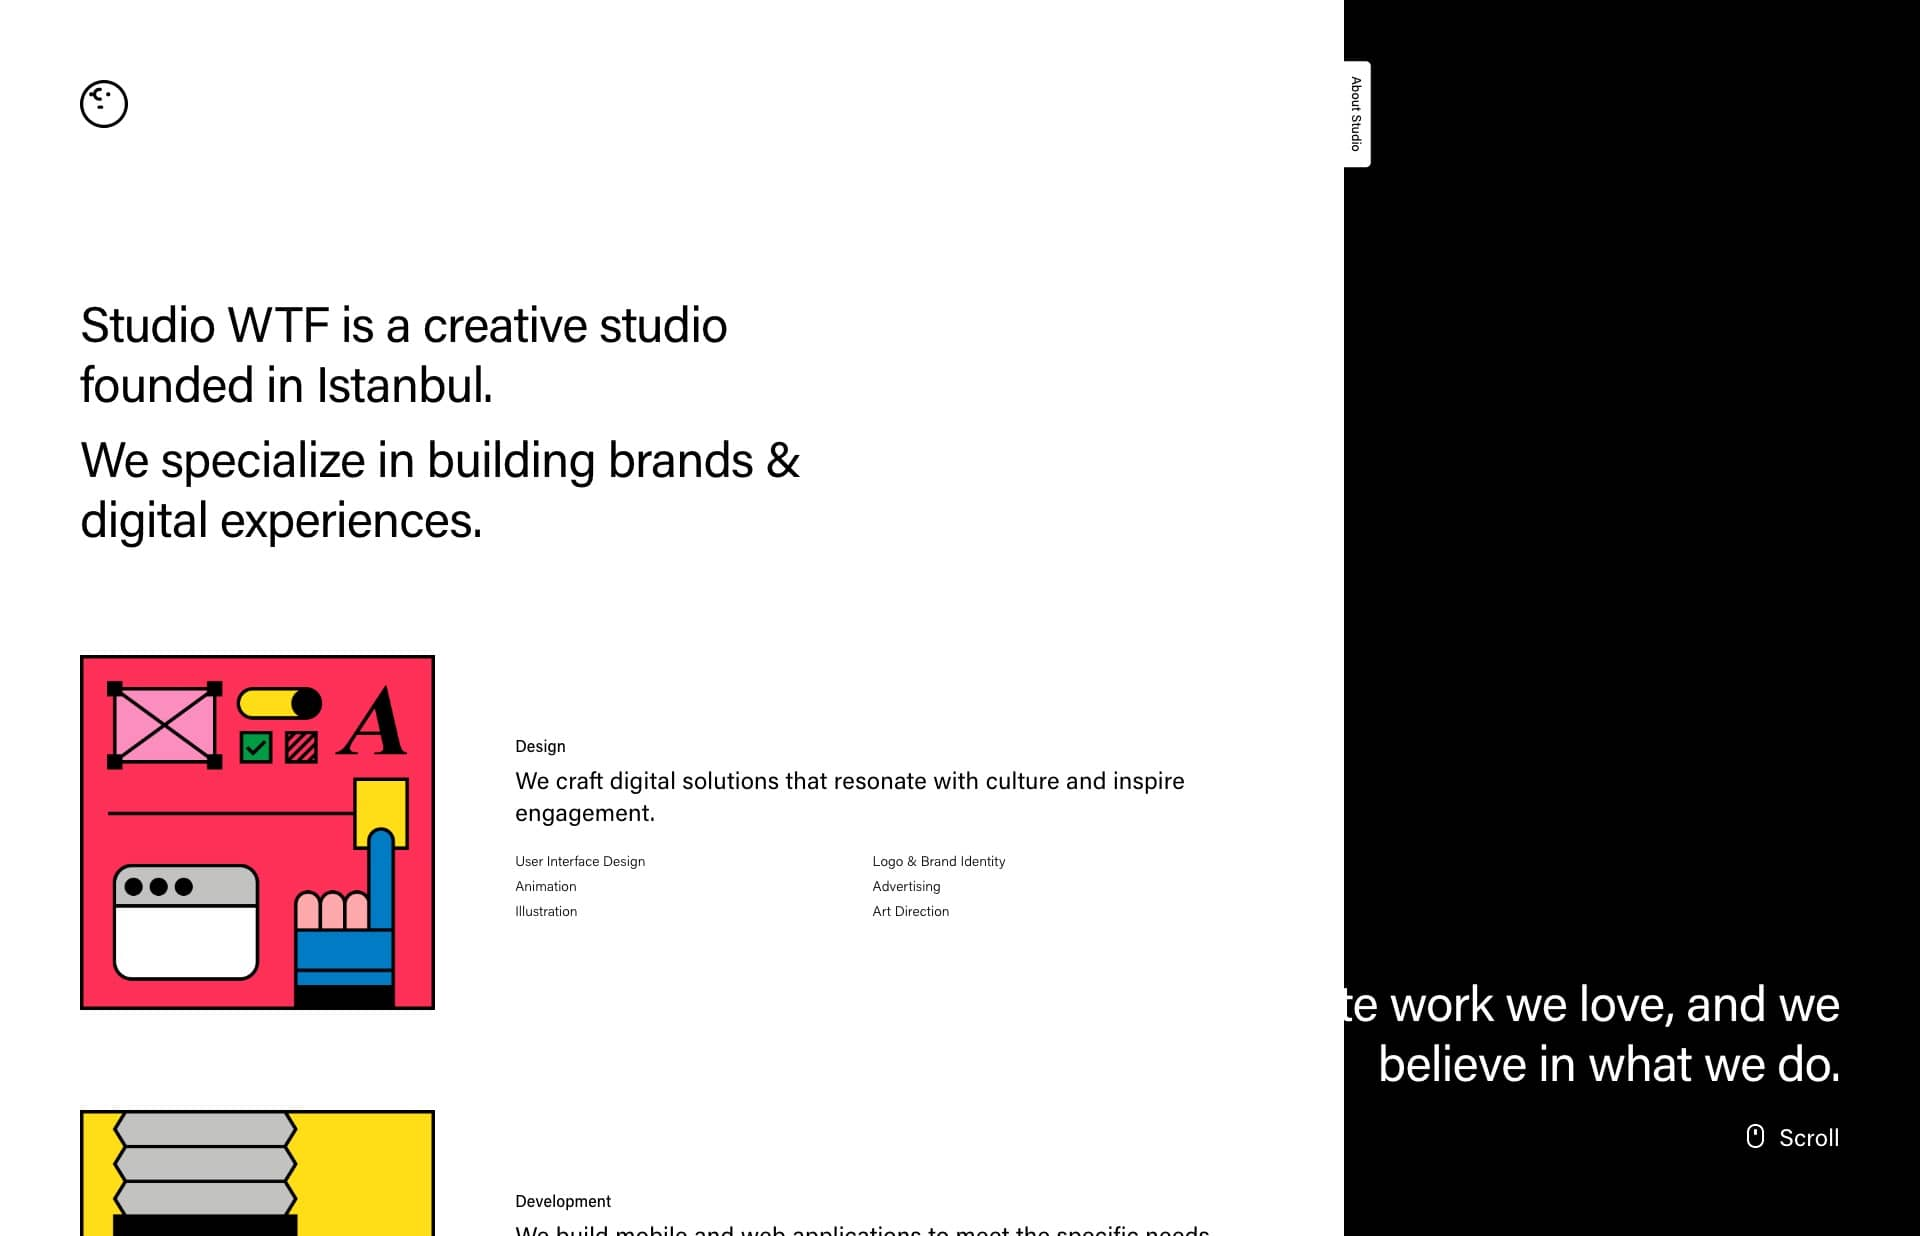 Screenshot of the website Studio WTF, featured on The Gallery, a curated collection of minimal websites